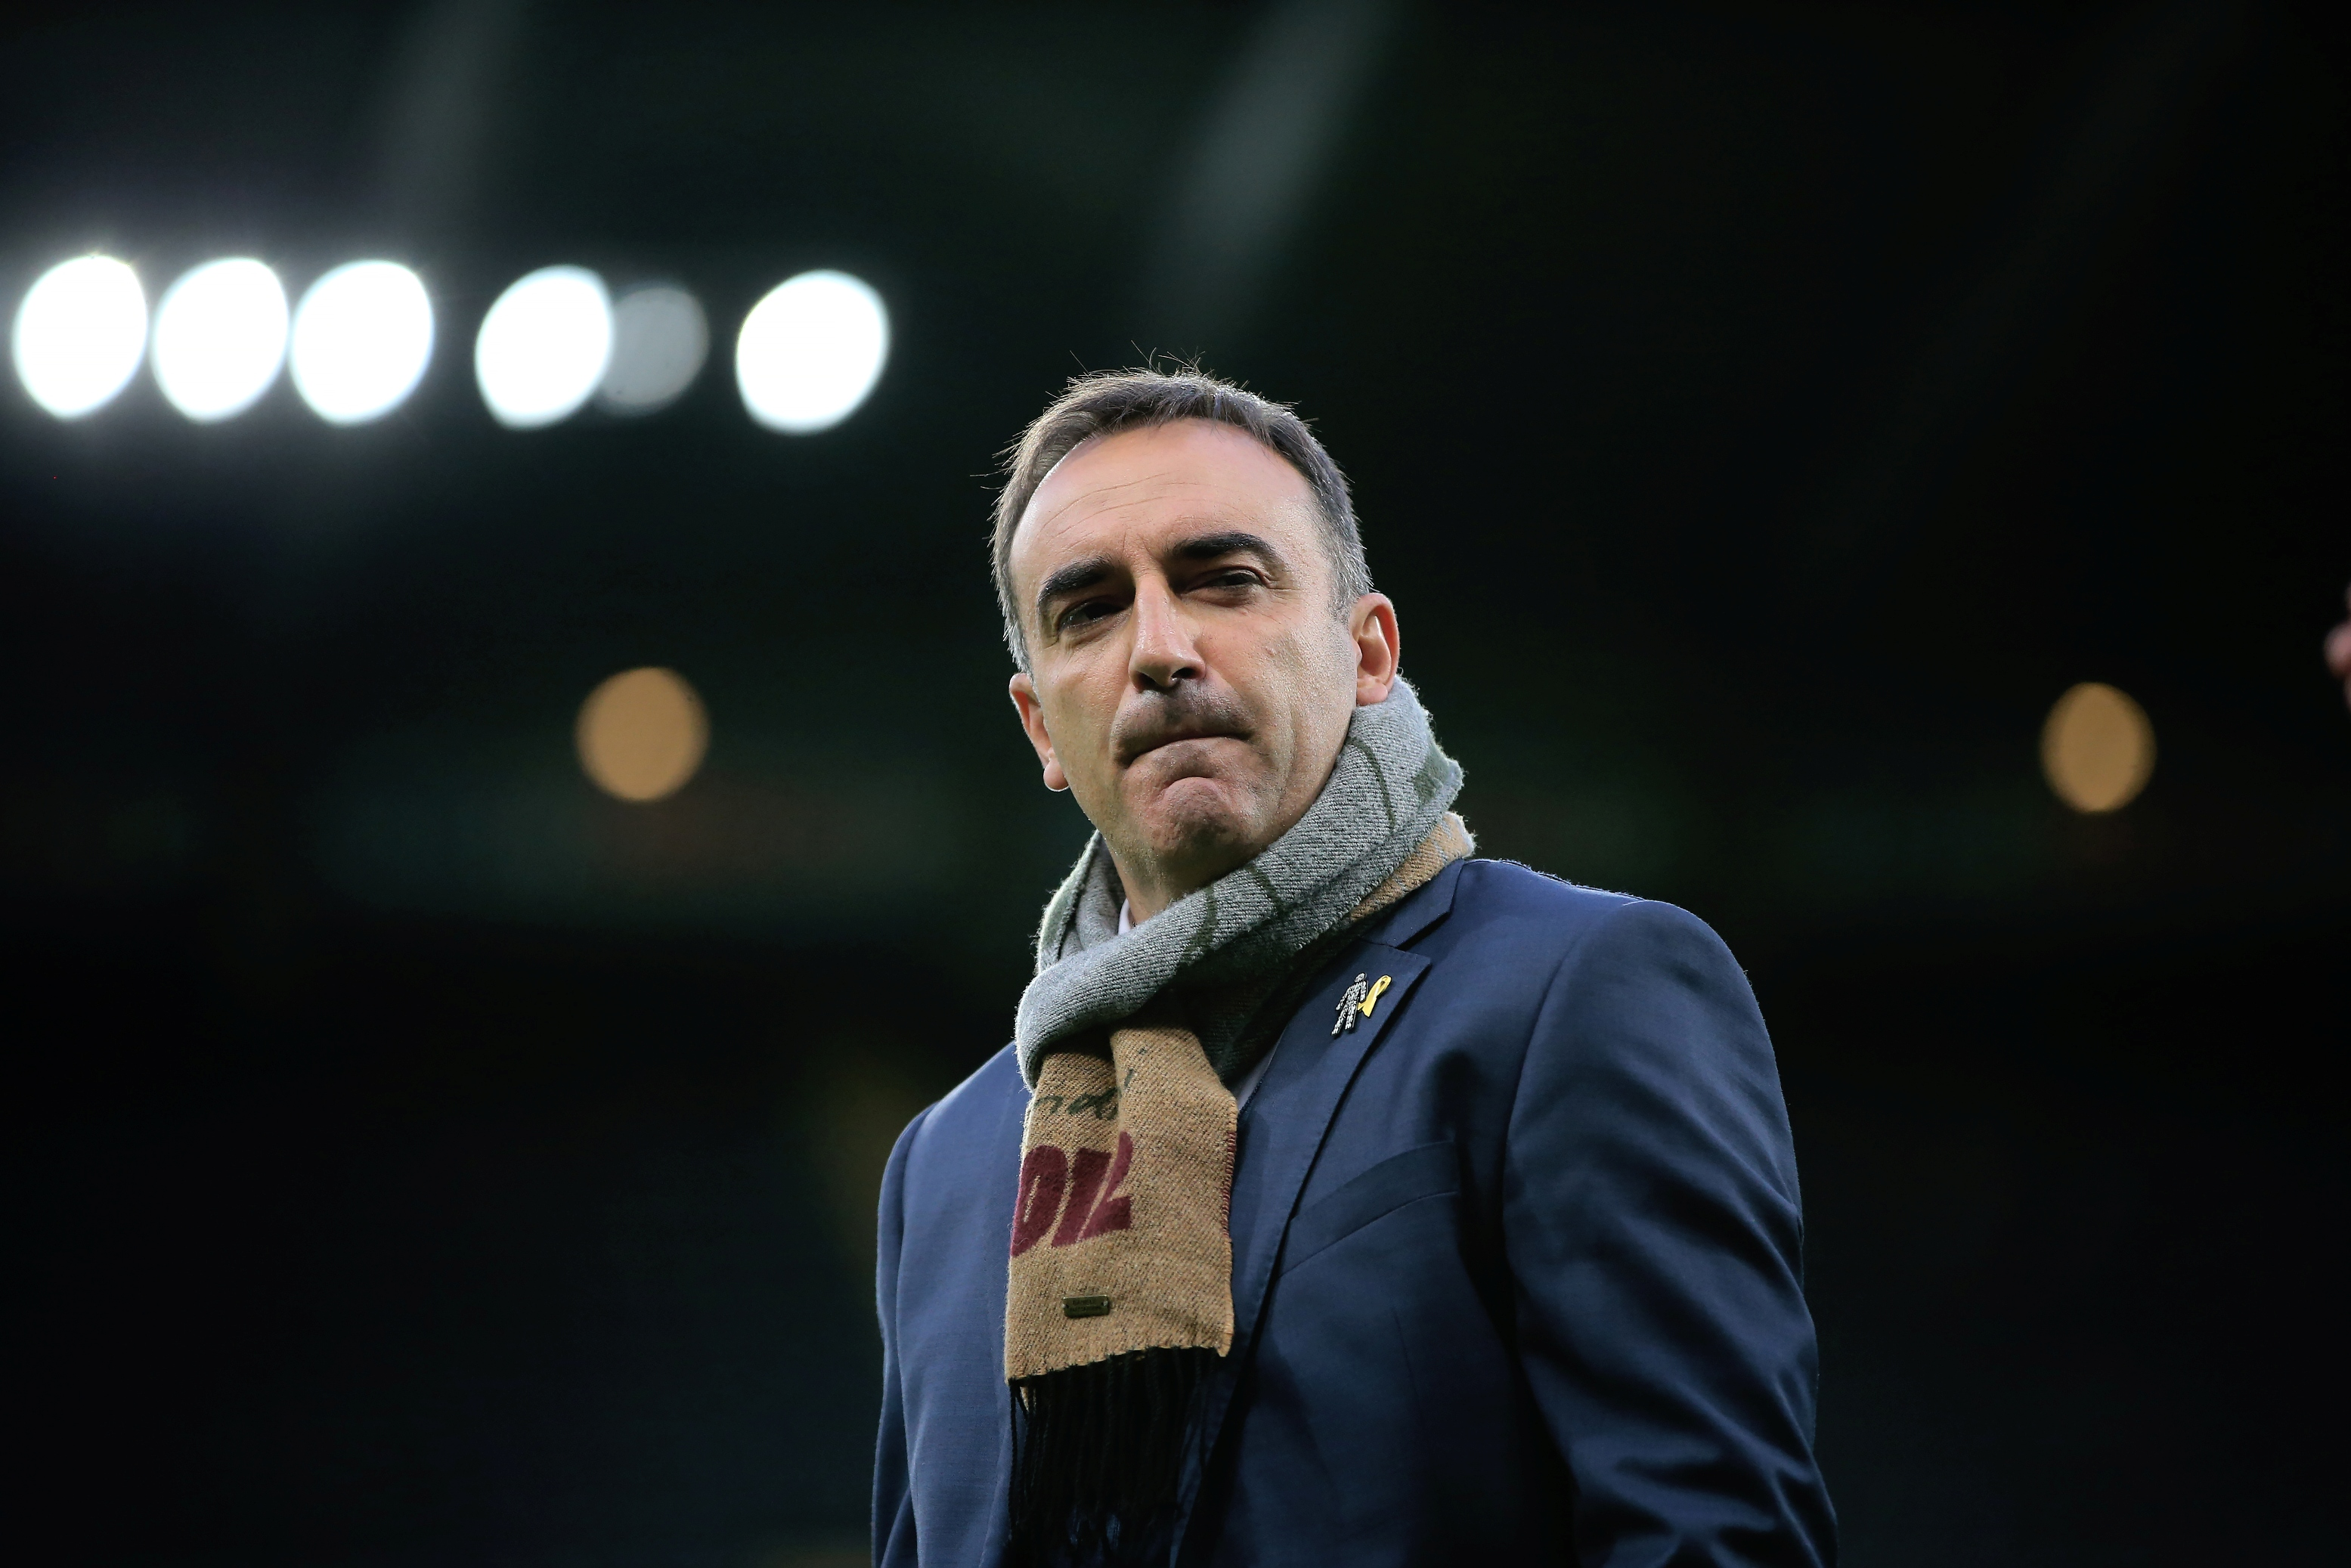 NEWCASTLE, ENGLAND - SEPTEMBER 23:  Carlos Carvalhal manager of Sheffield Wednesday looks on prior the Capital One Cup Third Round match between Newcastle United and Sheffield Wednesday at St James Park on September 23, 2015 in Newcastle, England. (Photo by Ian MacNicol/Getty images) *** Local Caption *** Carlos Carvalhal